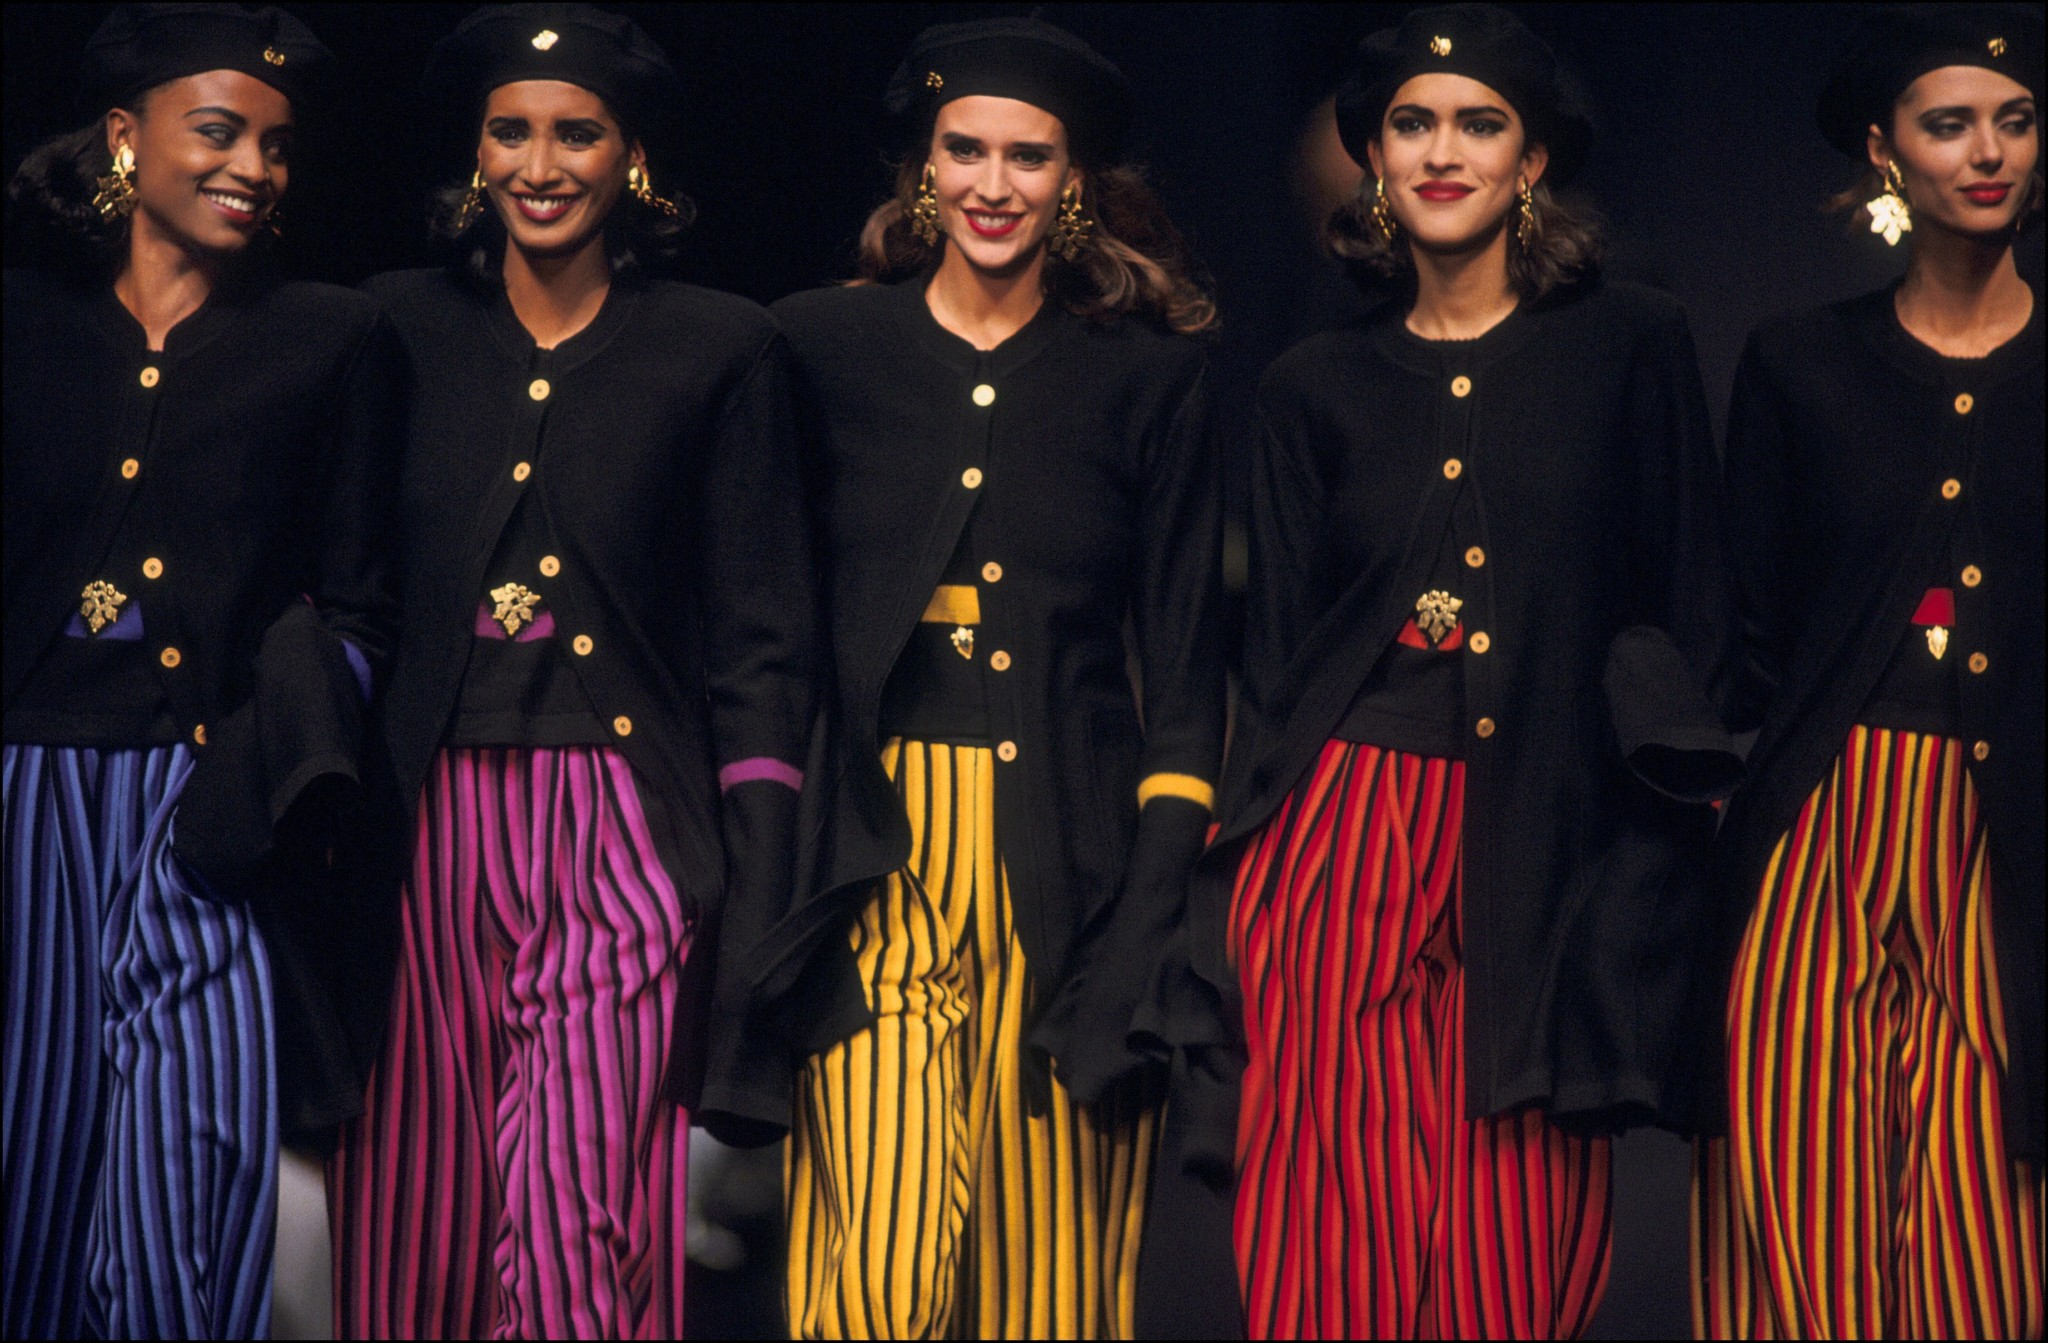 25a8eec236d Fashion loses an icon: Sonia Rykiel's life & inspiration in 14 ...